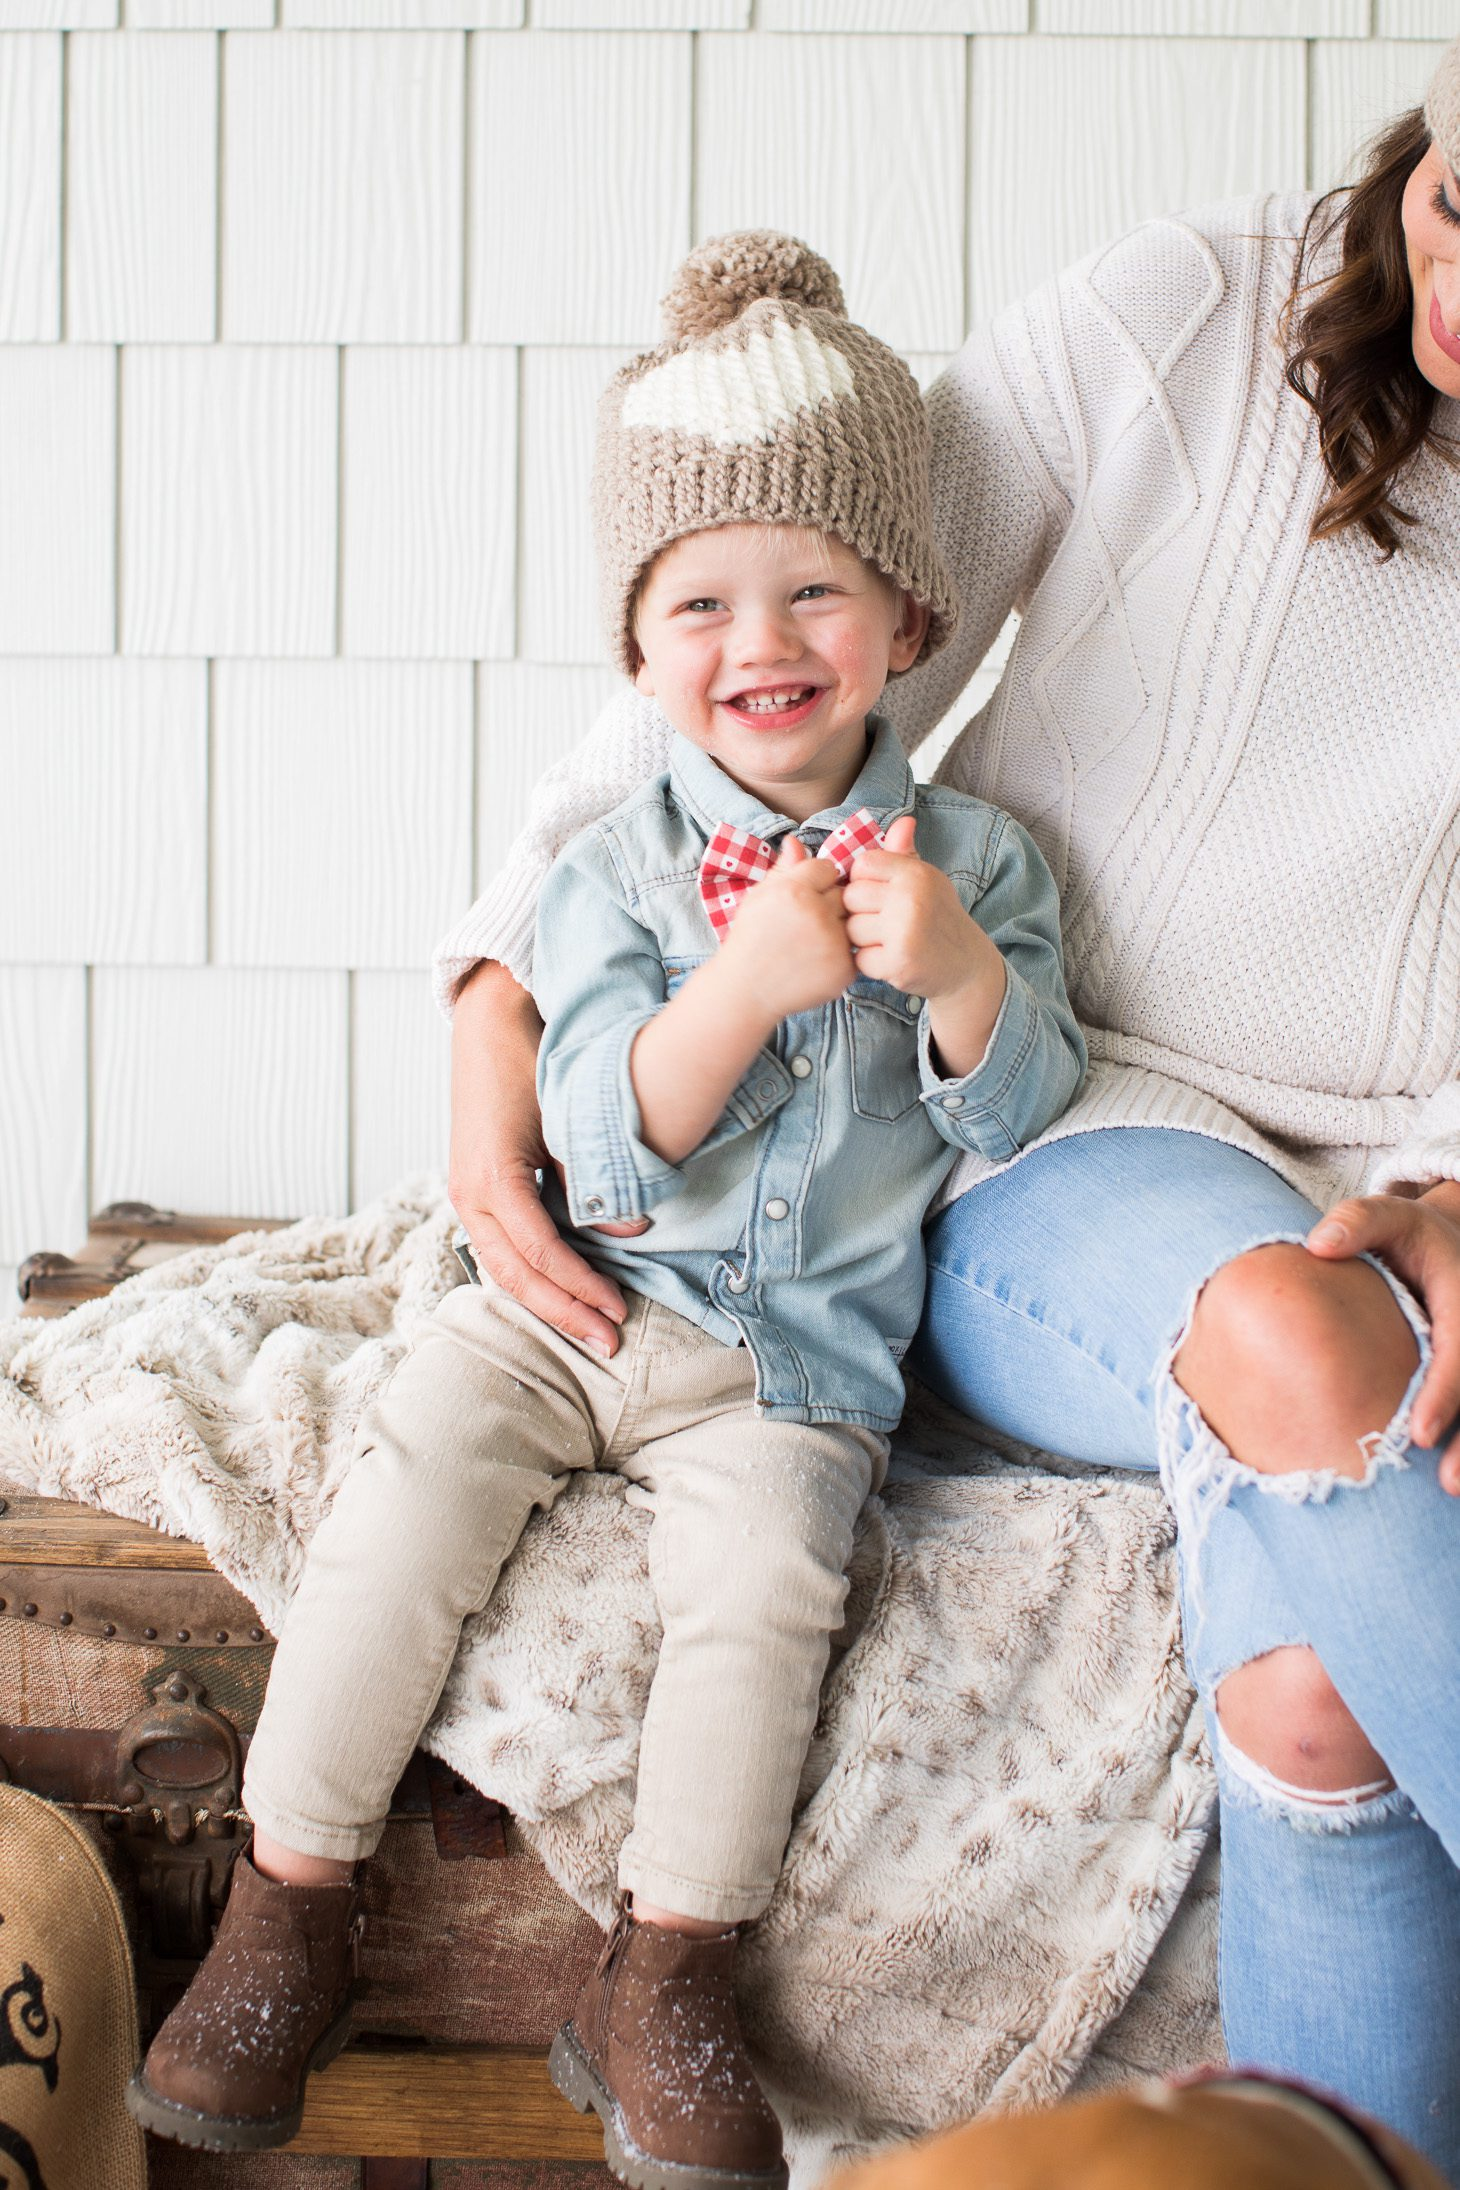 09a1dfcfd0e77 Ps. If you're looking for some really amazing clothing suggestions, check  out my list of my favourite Canadian baby brands here, because it's FILLED  with ...